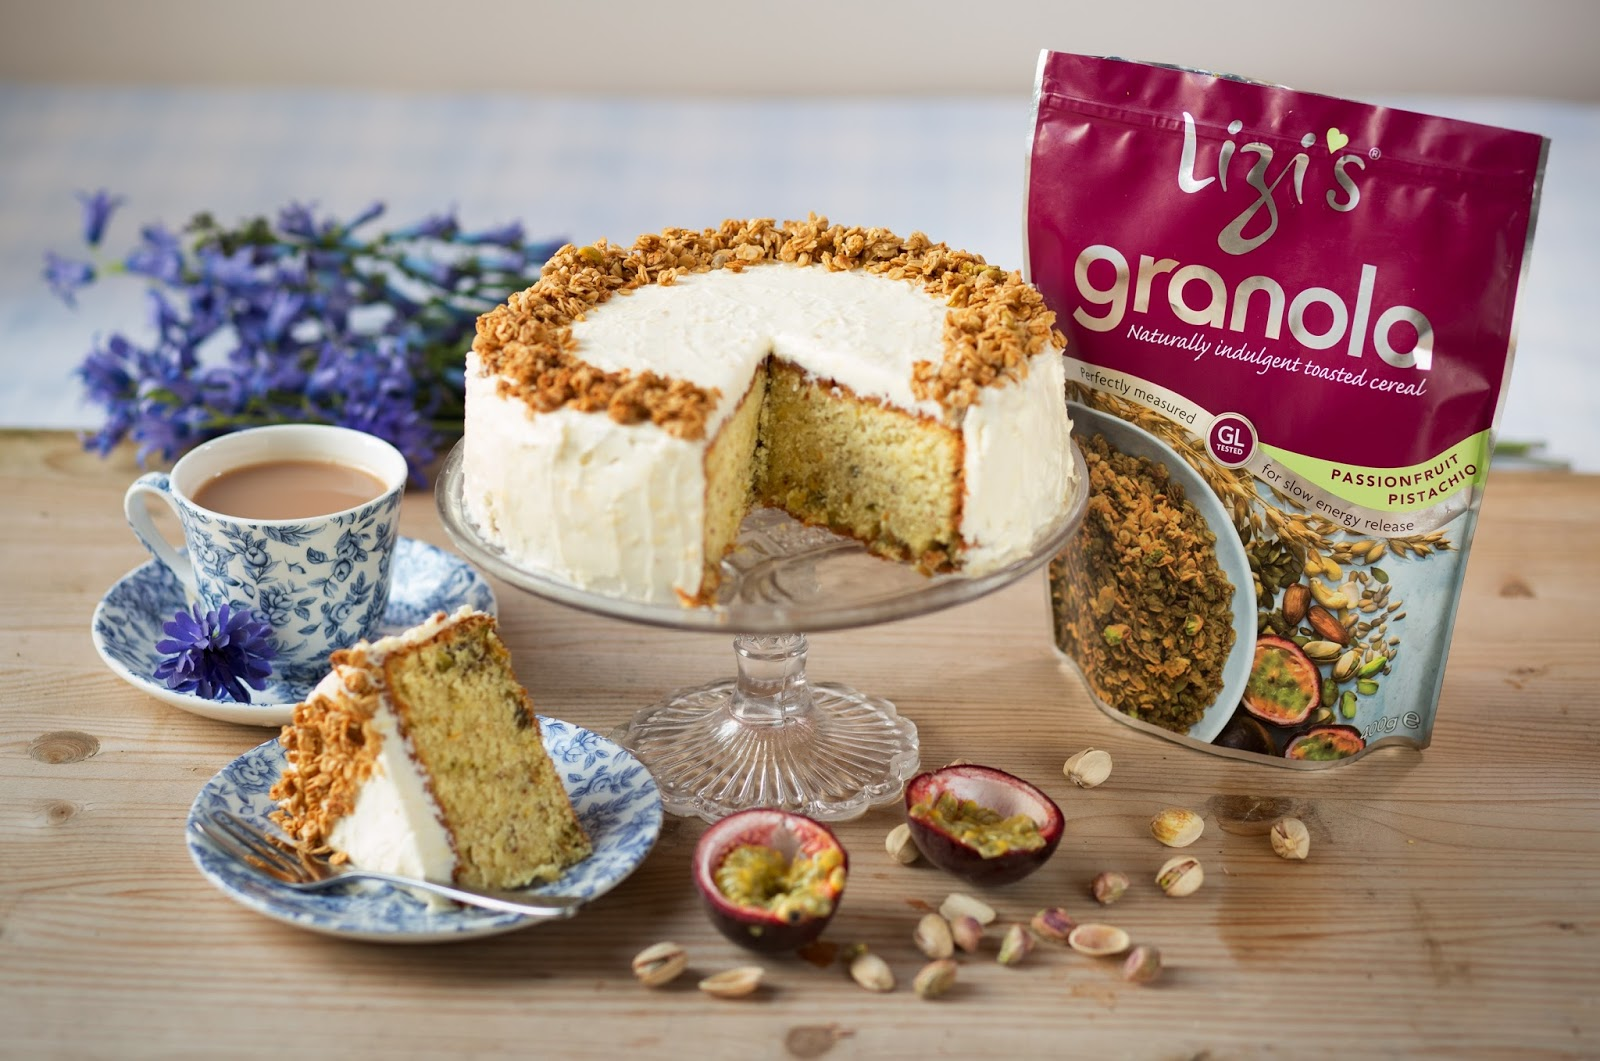 Passion Fruit And Pistachio Cake: Afternoon Tea Recipe